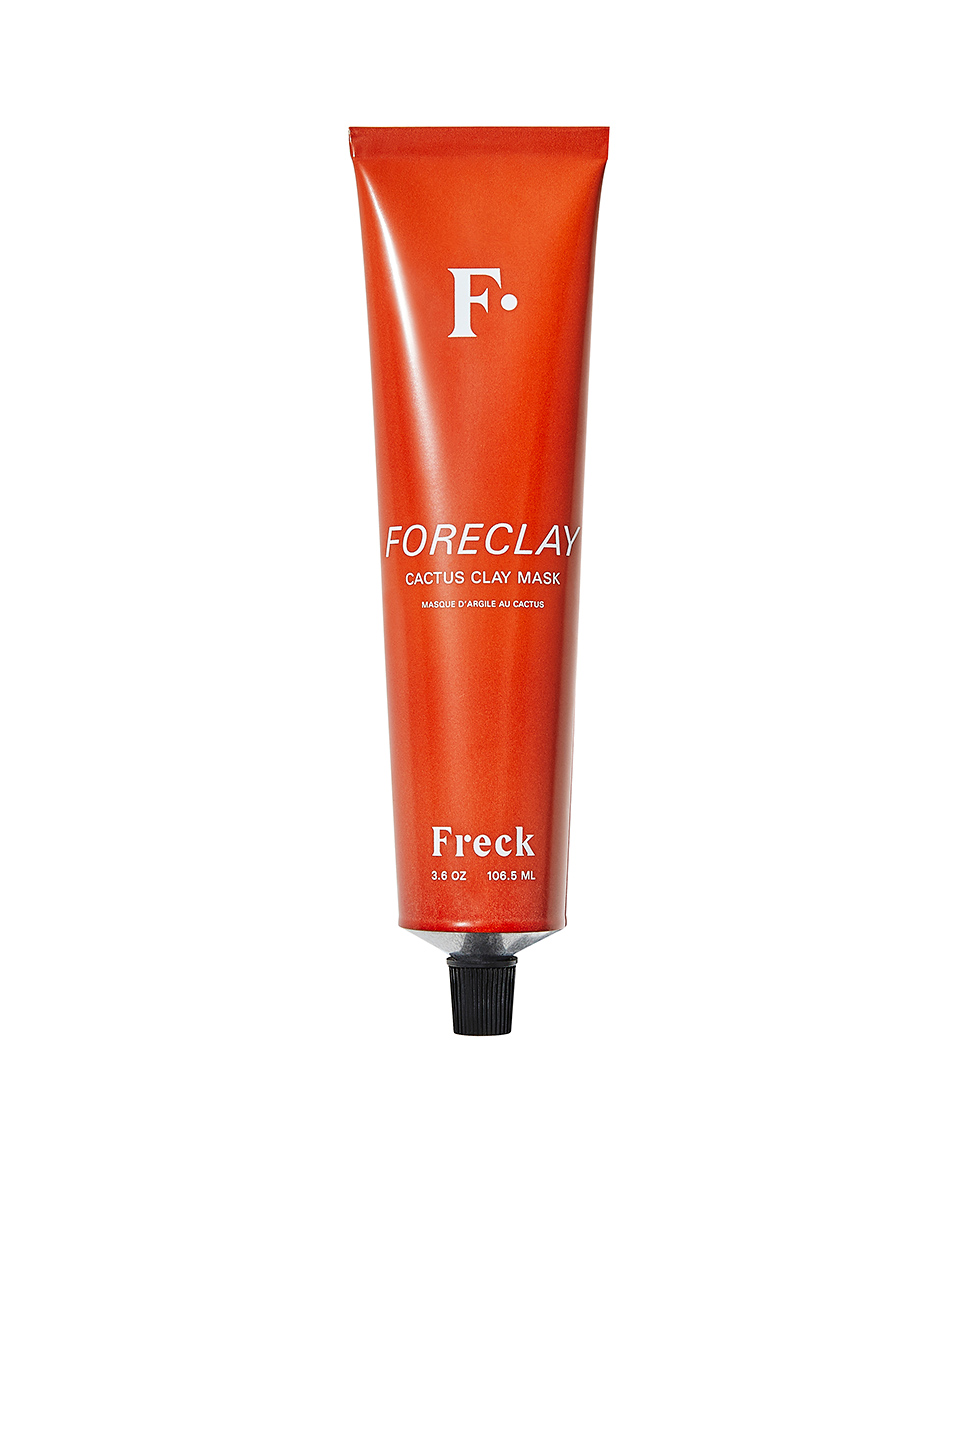 Freck Foreclay Cactus Clay Mask In N,a